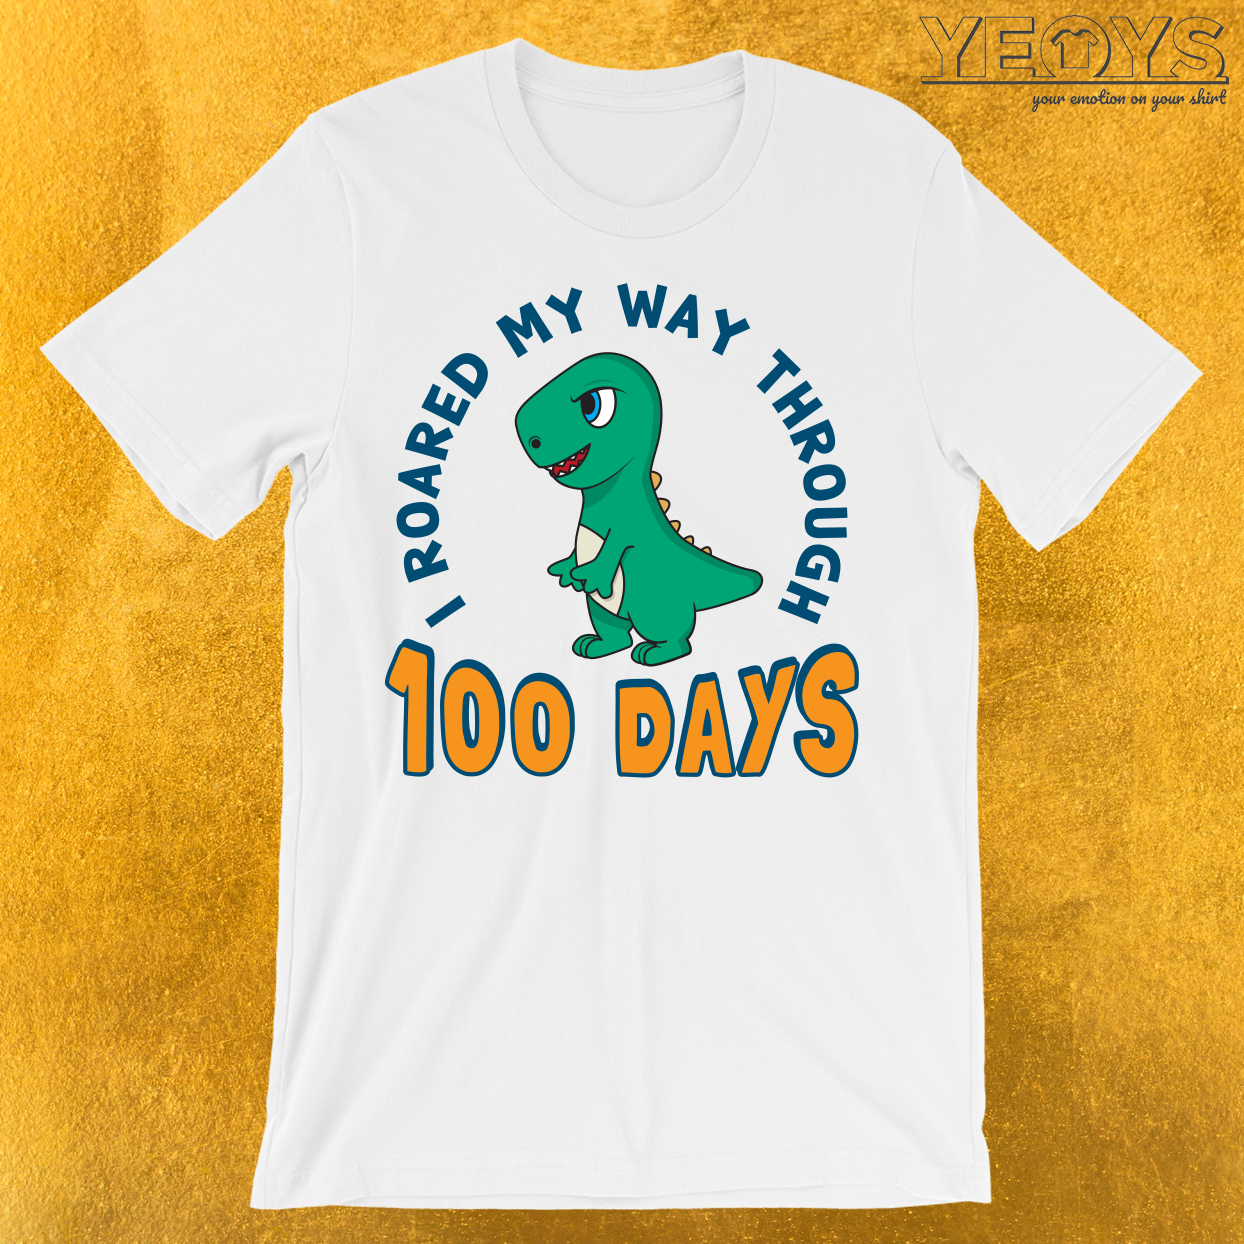 I Roared My Way Through 100 Days T-Shirt